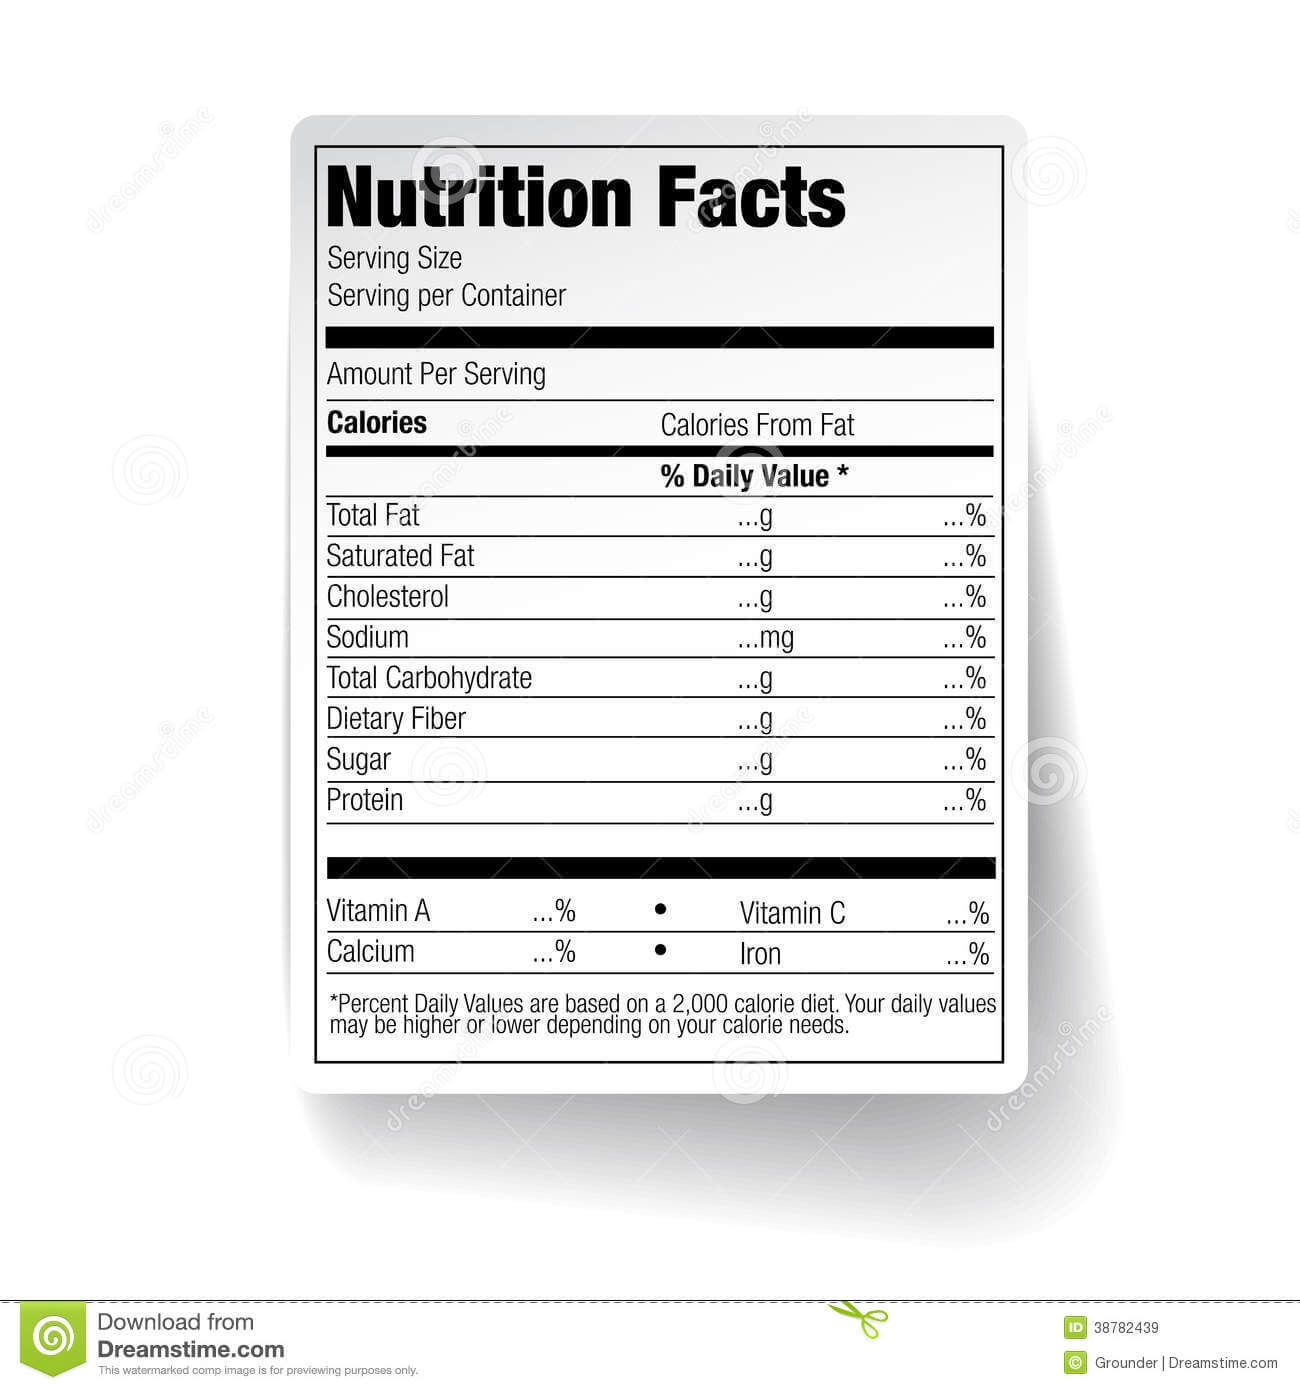 25 Images Of Empty Nutrition Label Template | Vanscapital With Regard To Blank Food Label Template